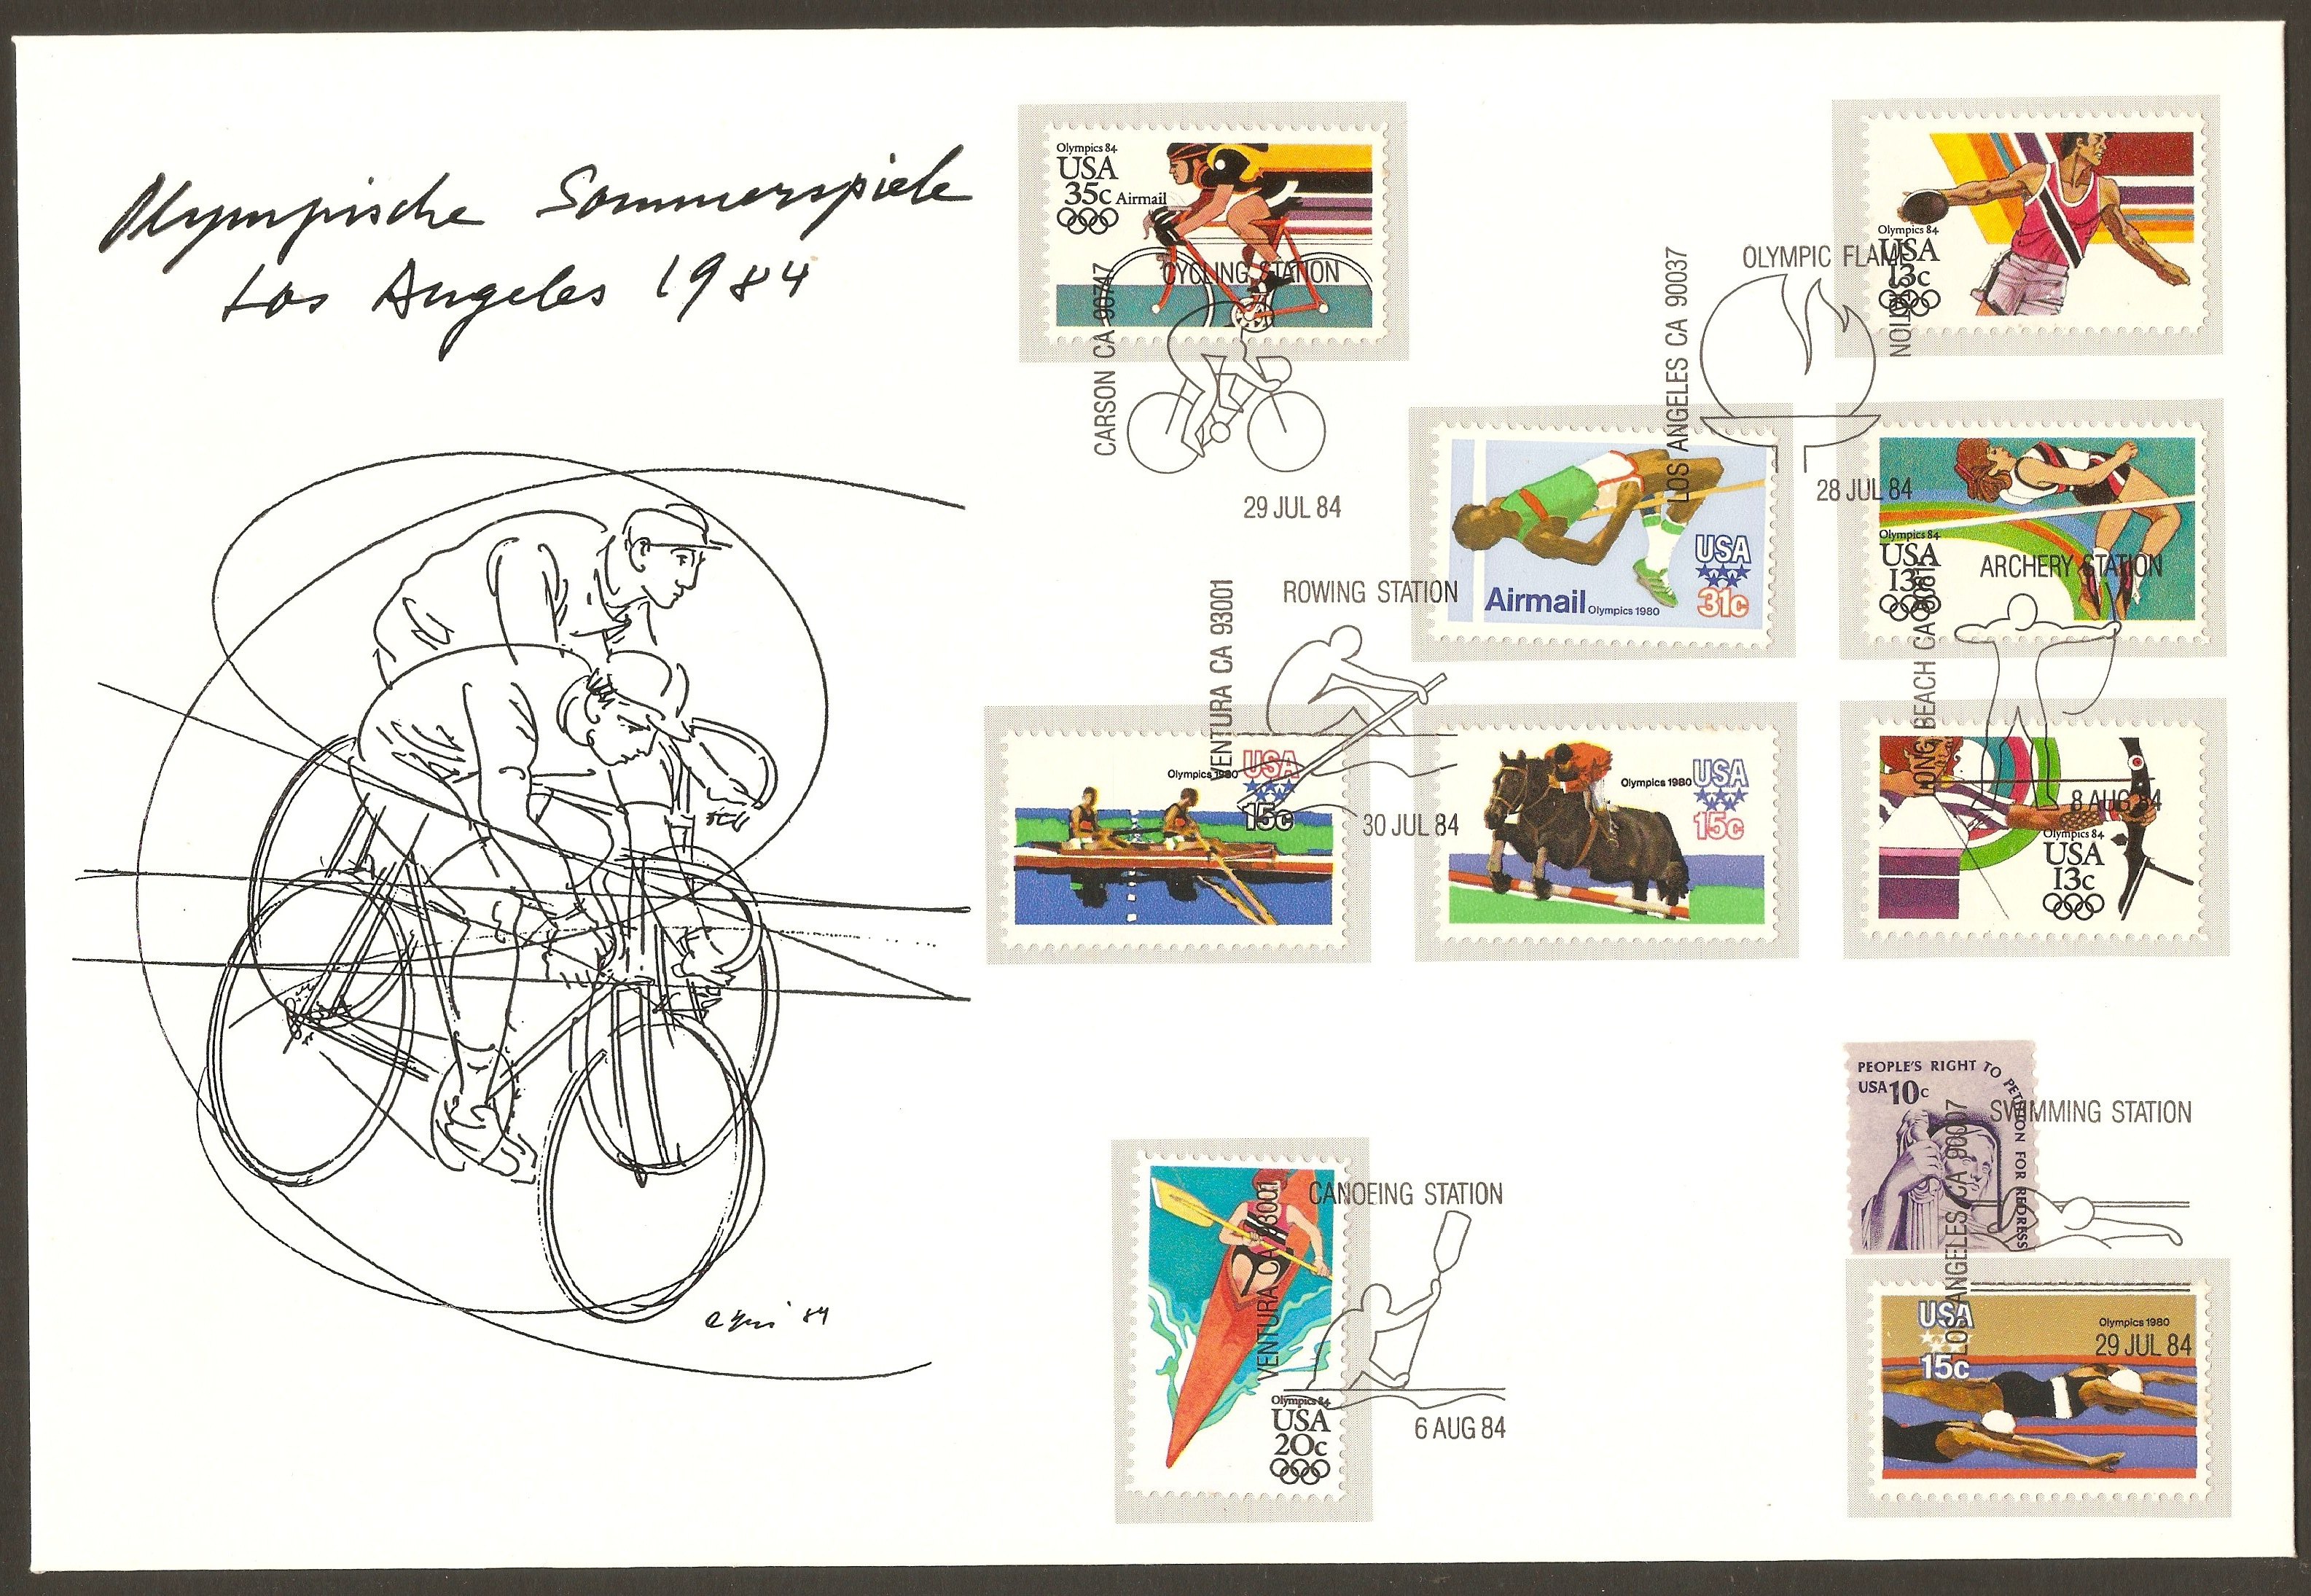 United States 1979 Moscow Olympics Souvenir Cover.